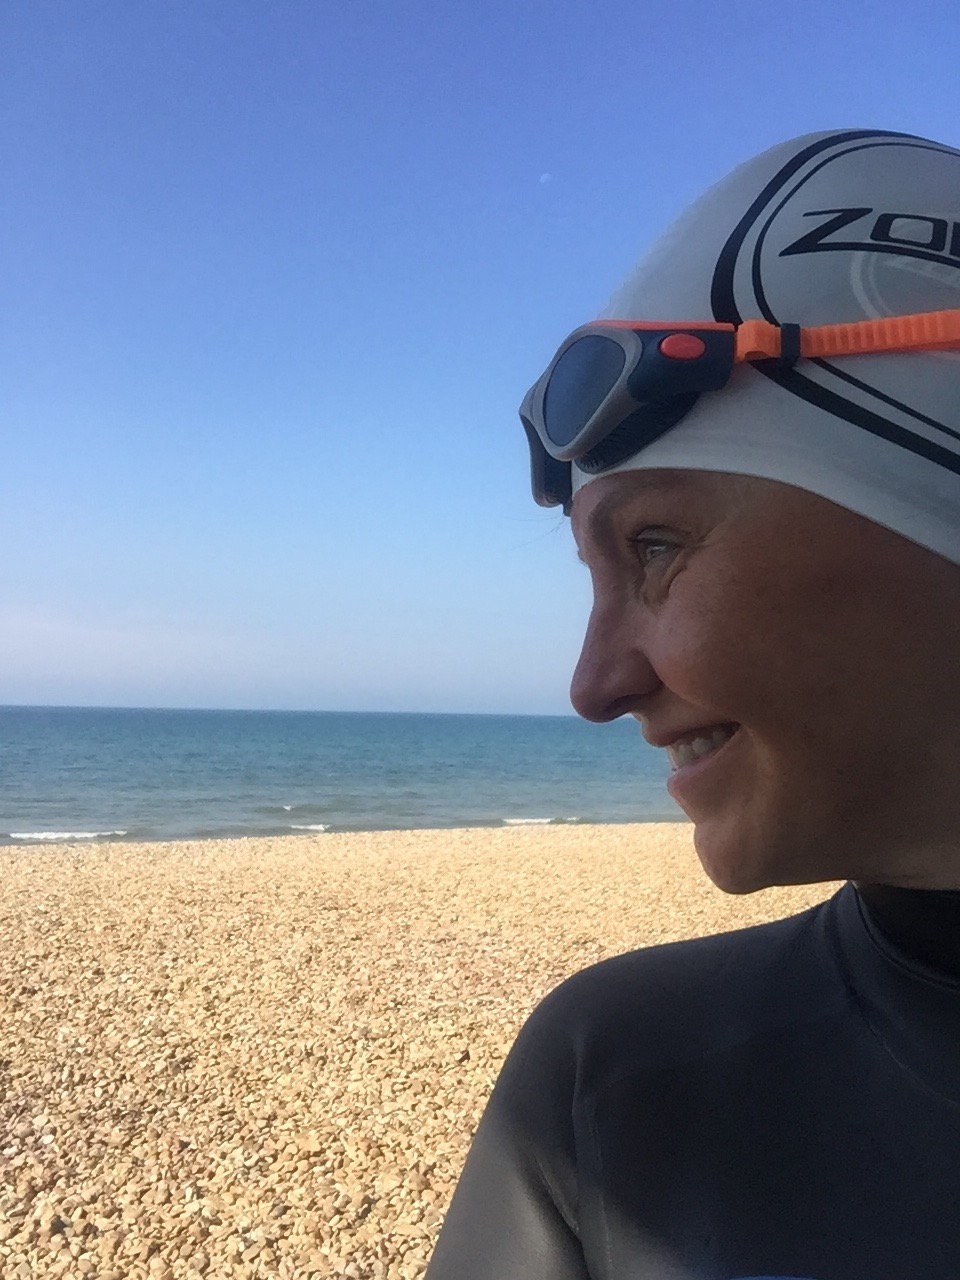 1:1 Introduction to Open water swimming